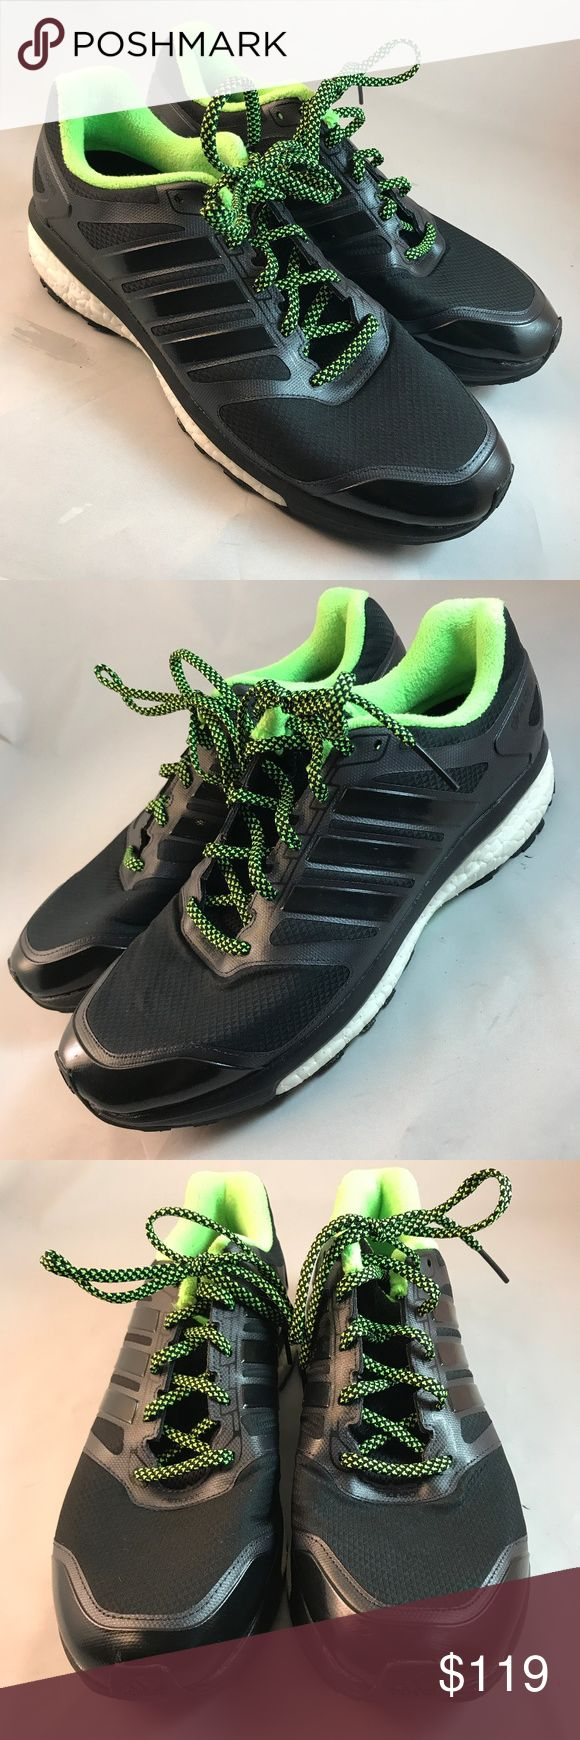 Black Adidas Glide Boost ATR Trail Mens 10, 44 EUR Adidas Glide Boost ATR Trail Mens 10, 44 EUR,  Black water-resistant uppers with lime accents. Trail ready rubber bottom soles. These do not come with the box. They were tried on indoors for about 30 minutes for fitment. Adidas Shoes Athletic Shoes